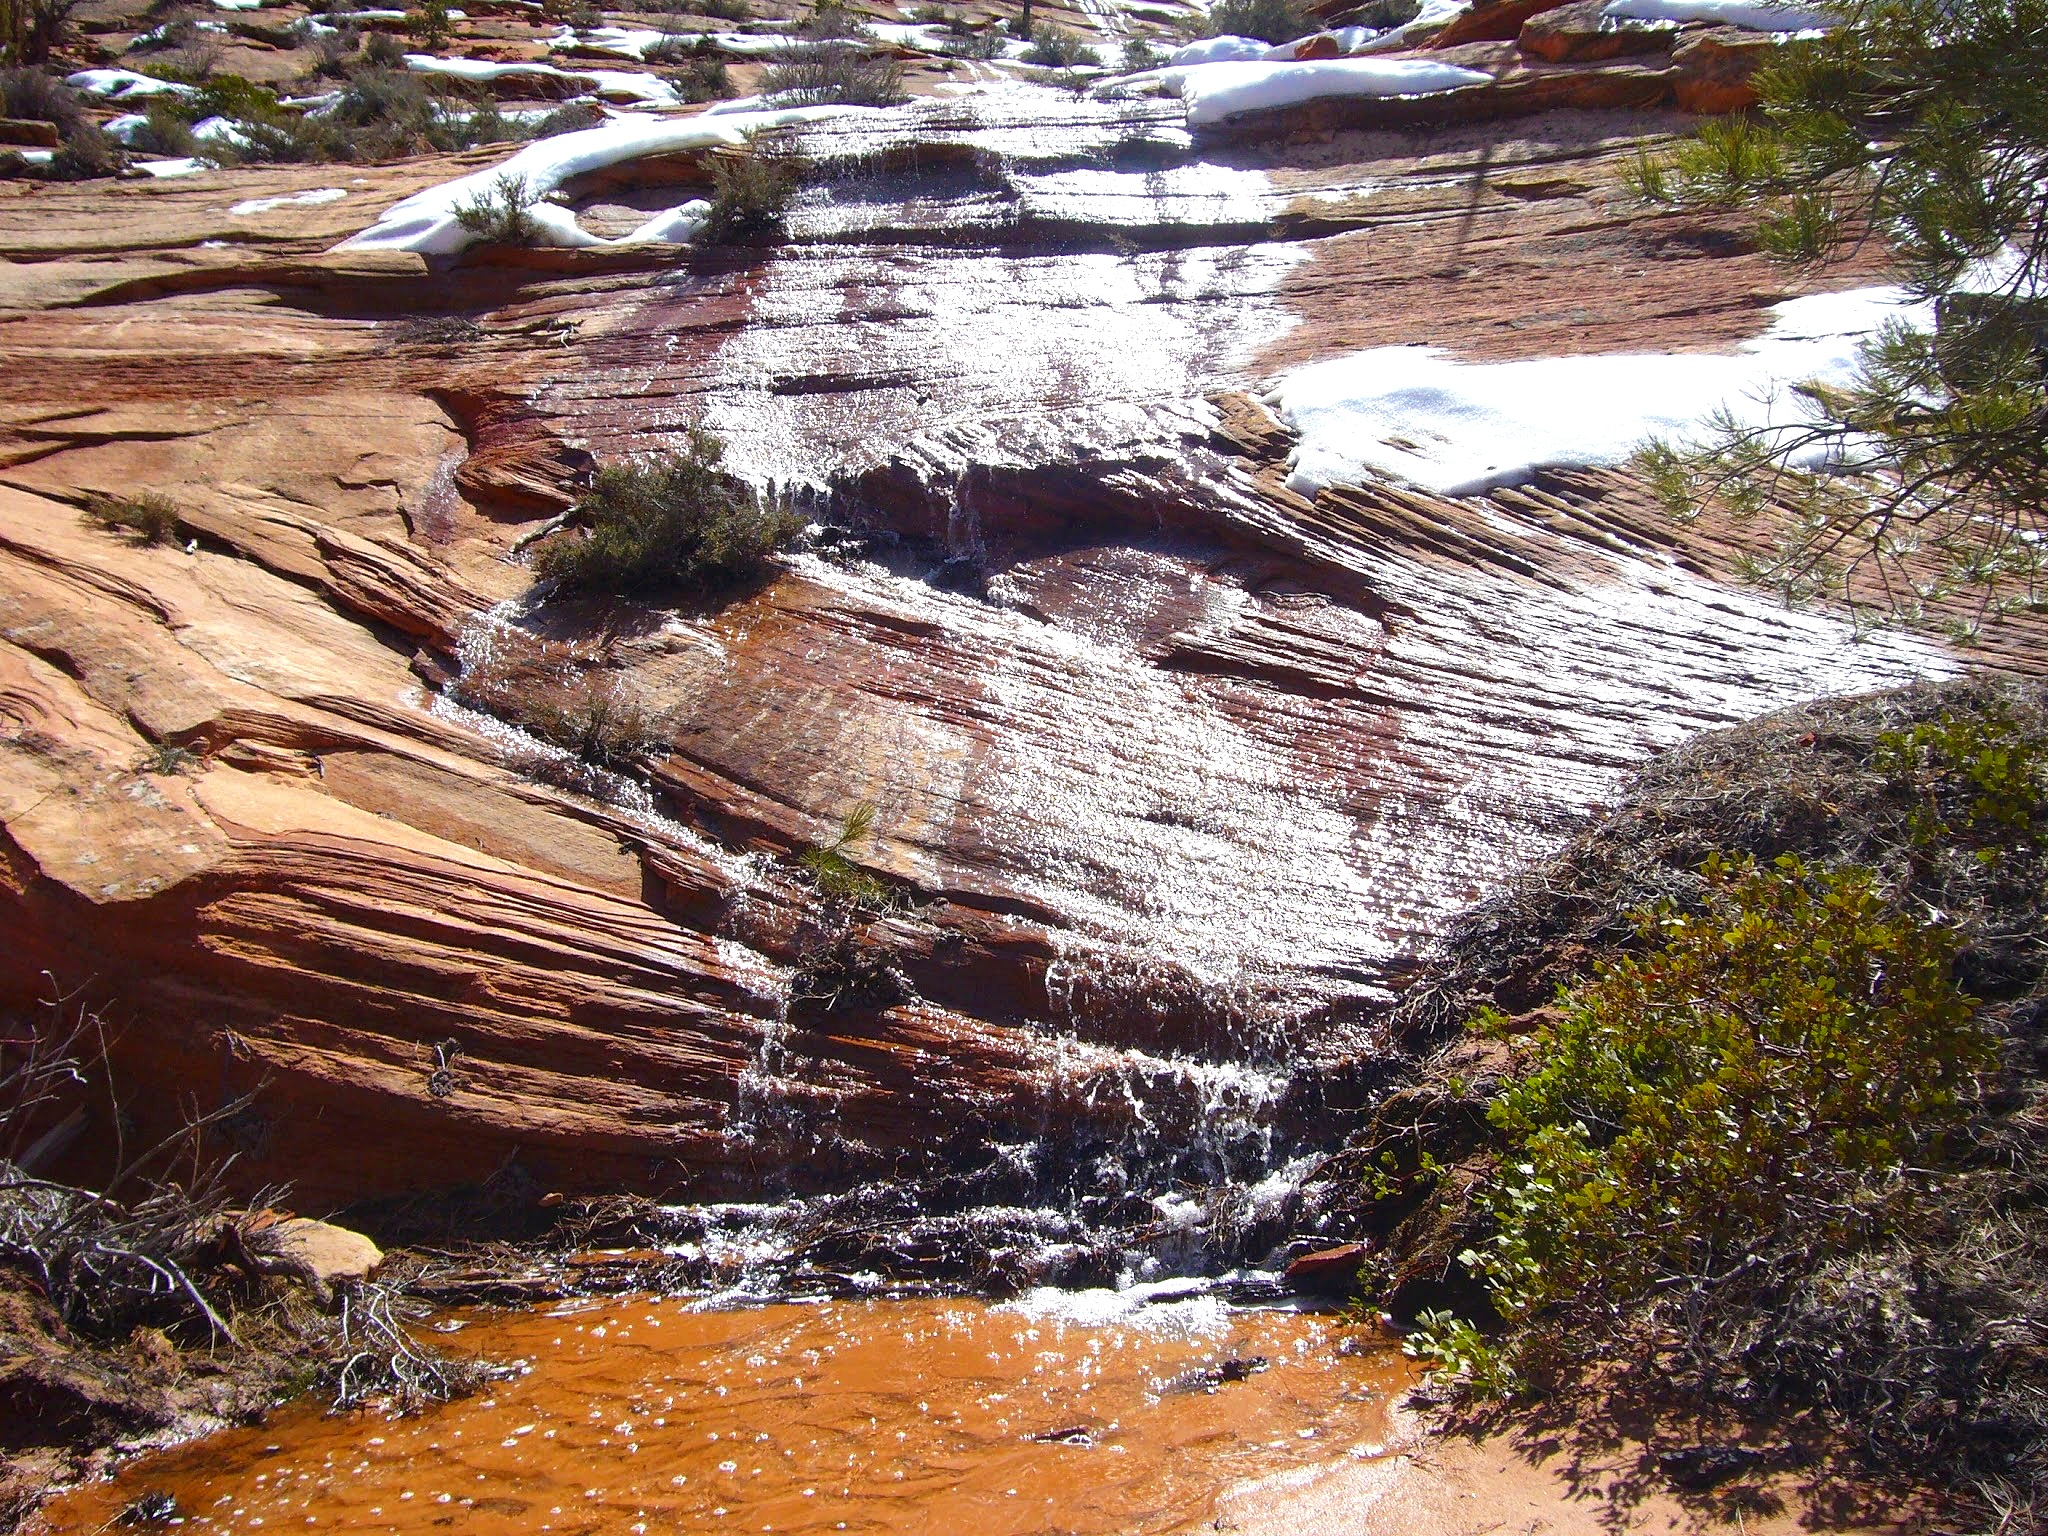 Zion National Park - still snow on the ground